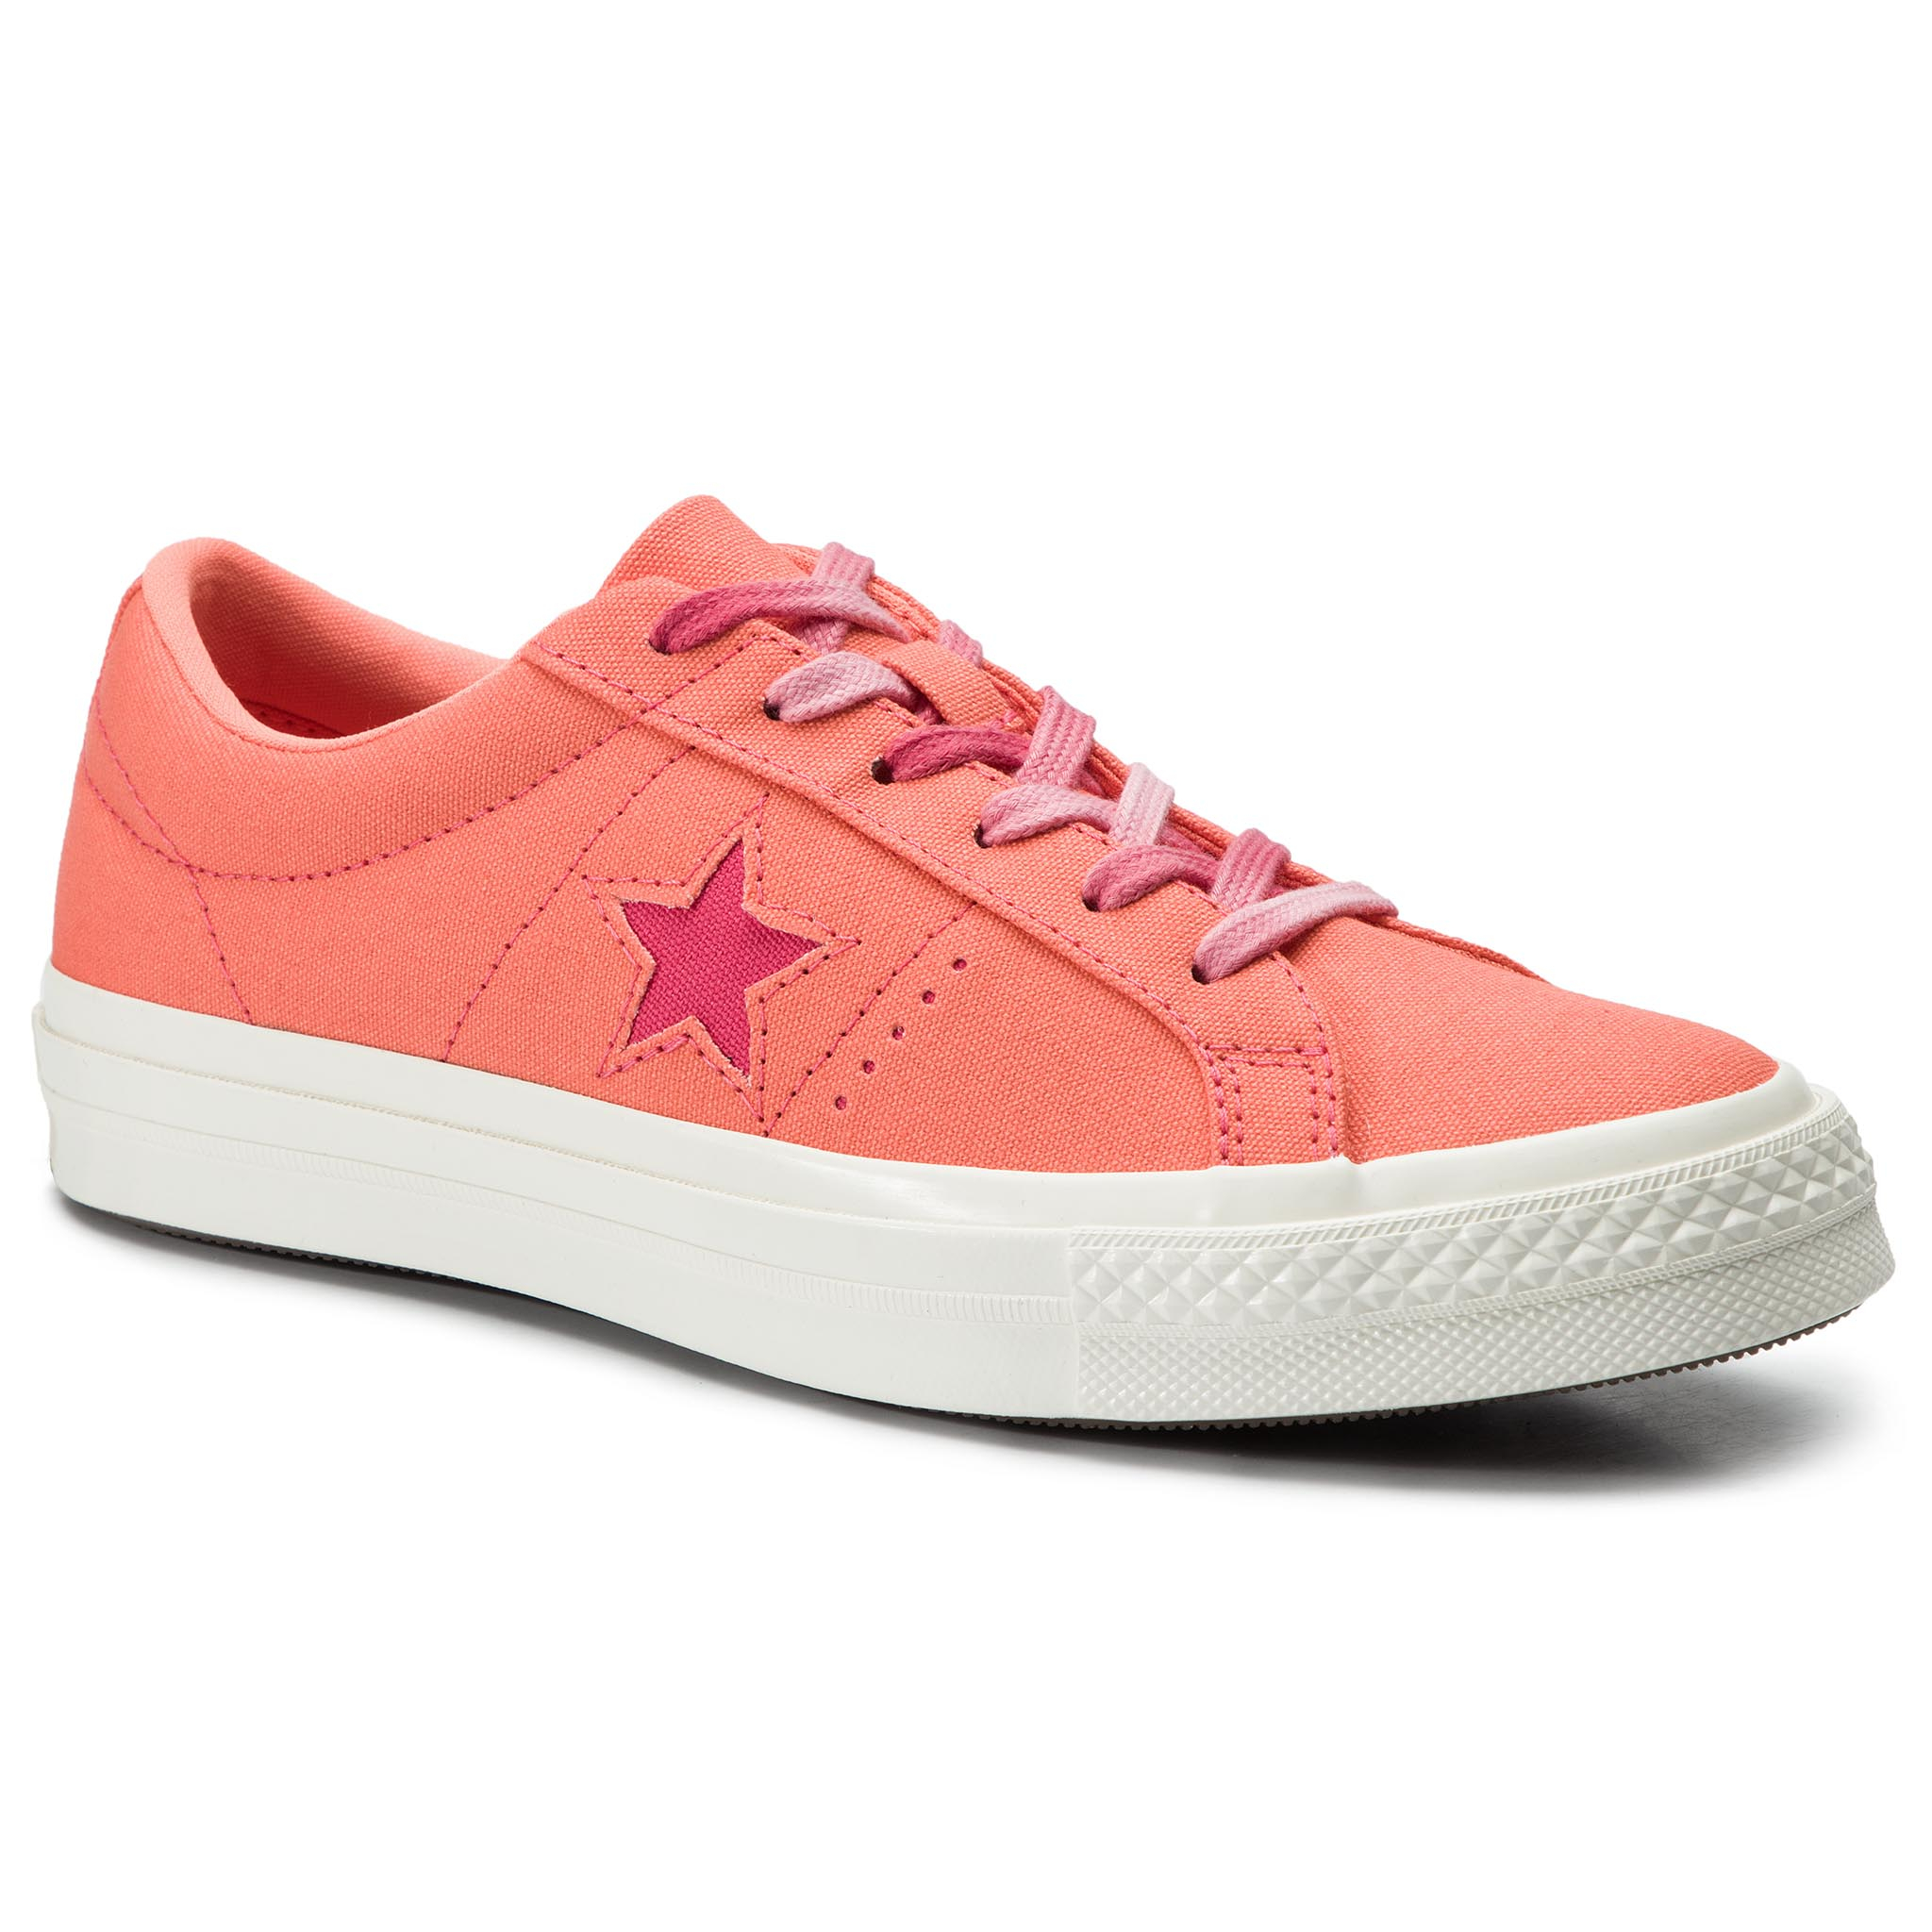 Plimsolls CONVERSE One Star Ox 160623C Barely RoseGym Red